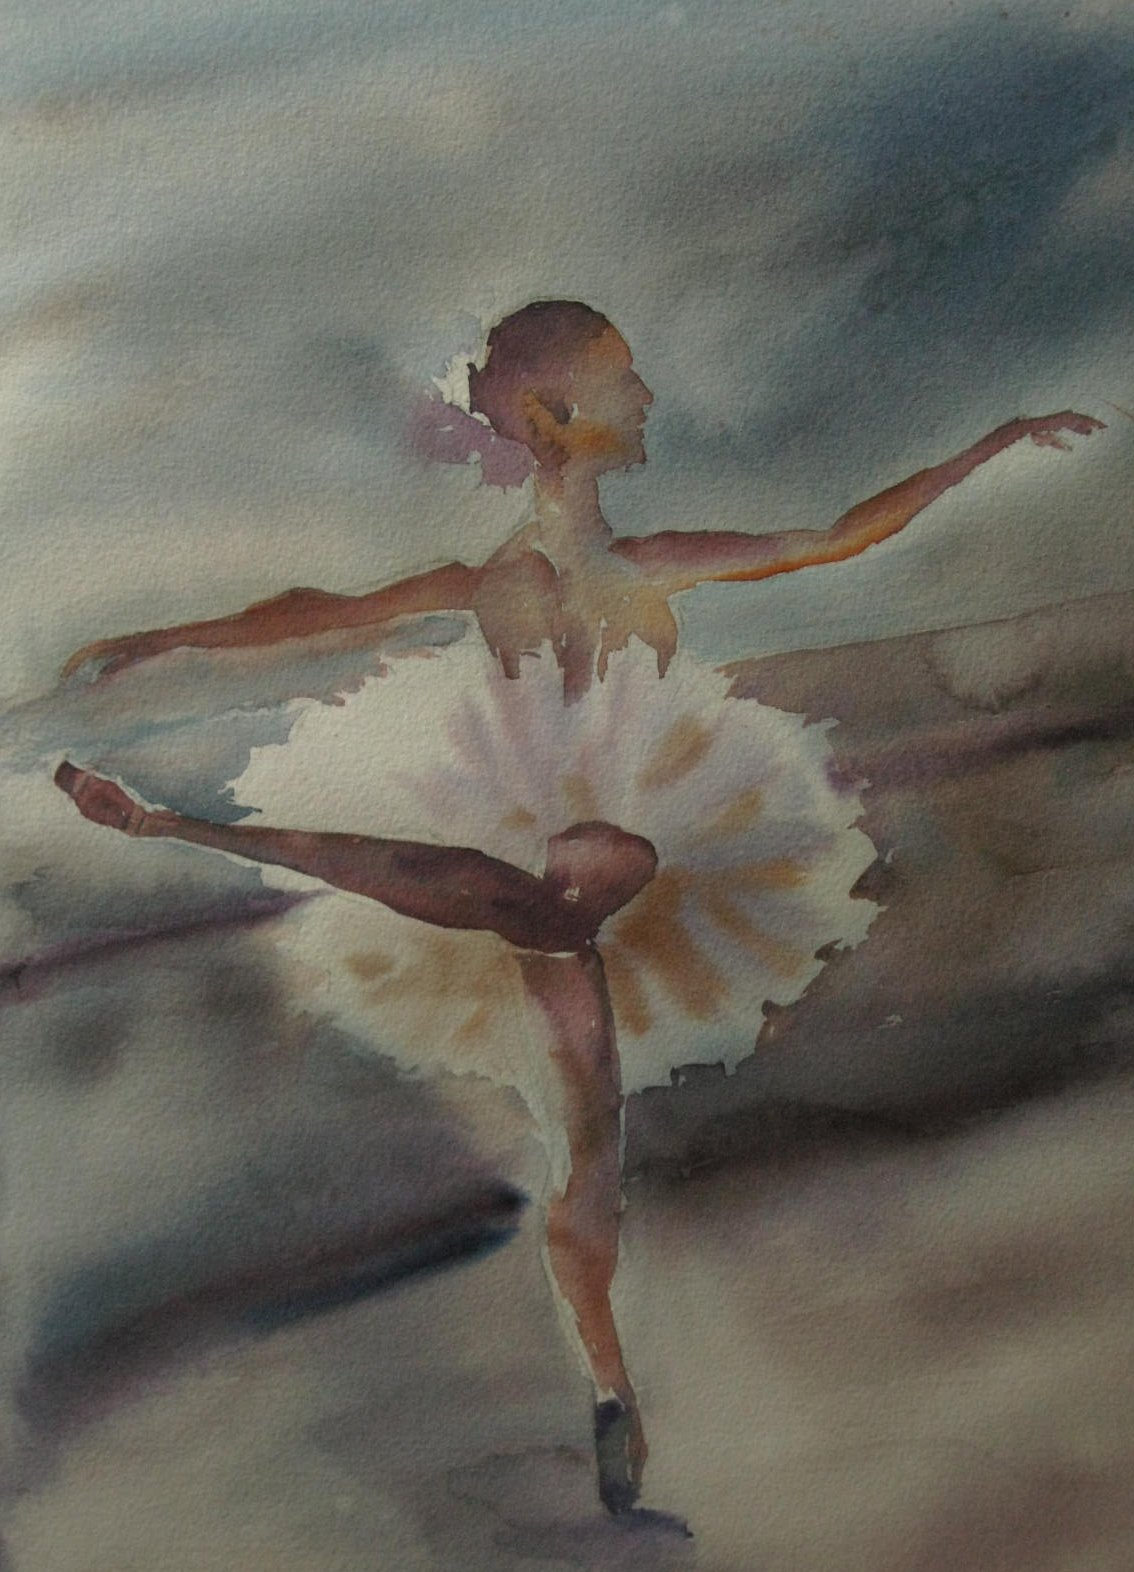 Ballerina+40x30cm+watercolor.JPG